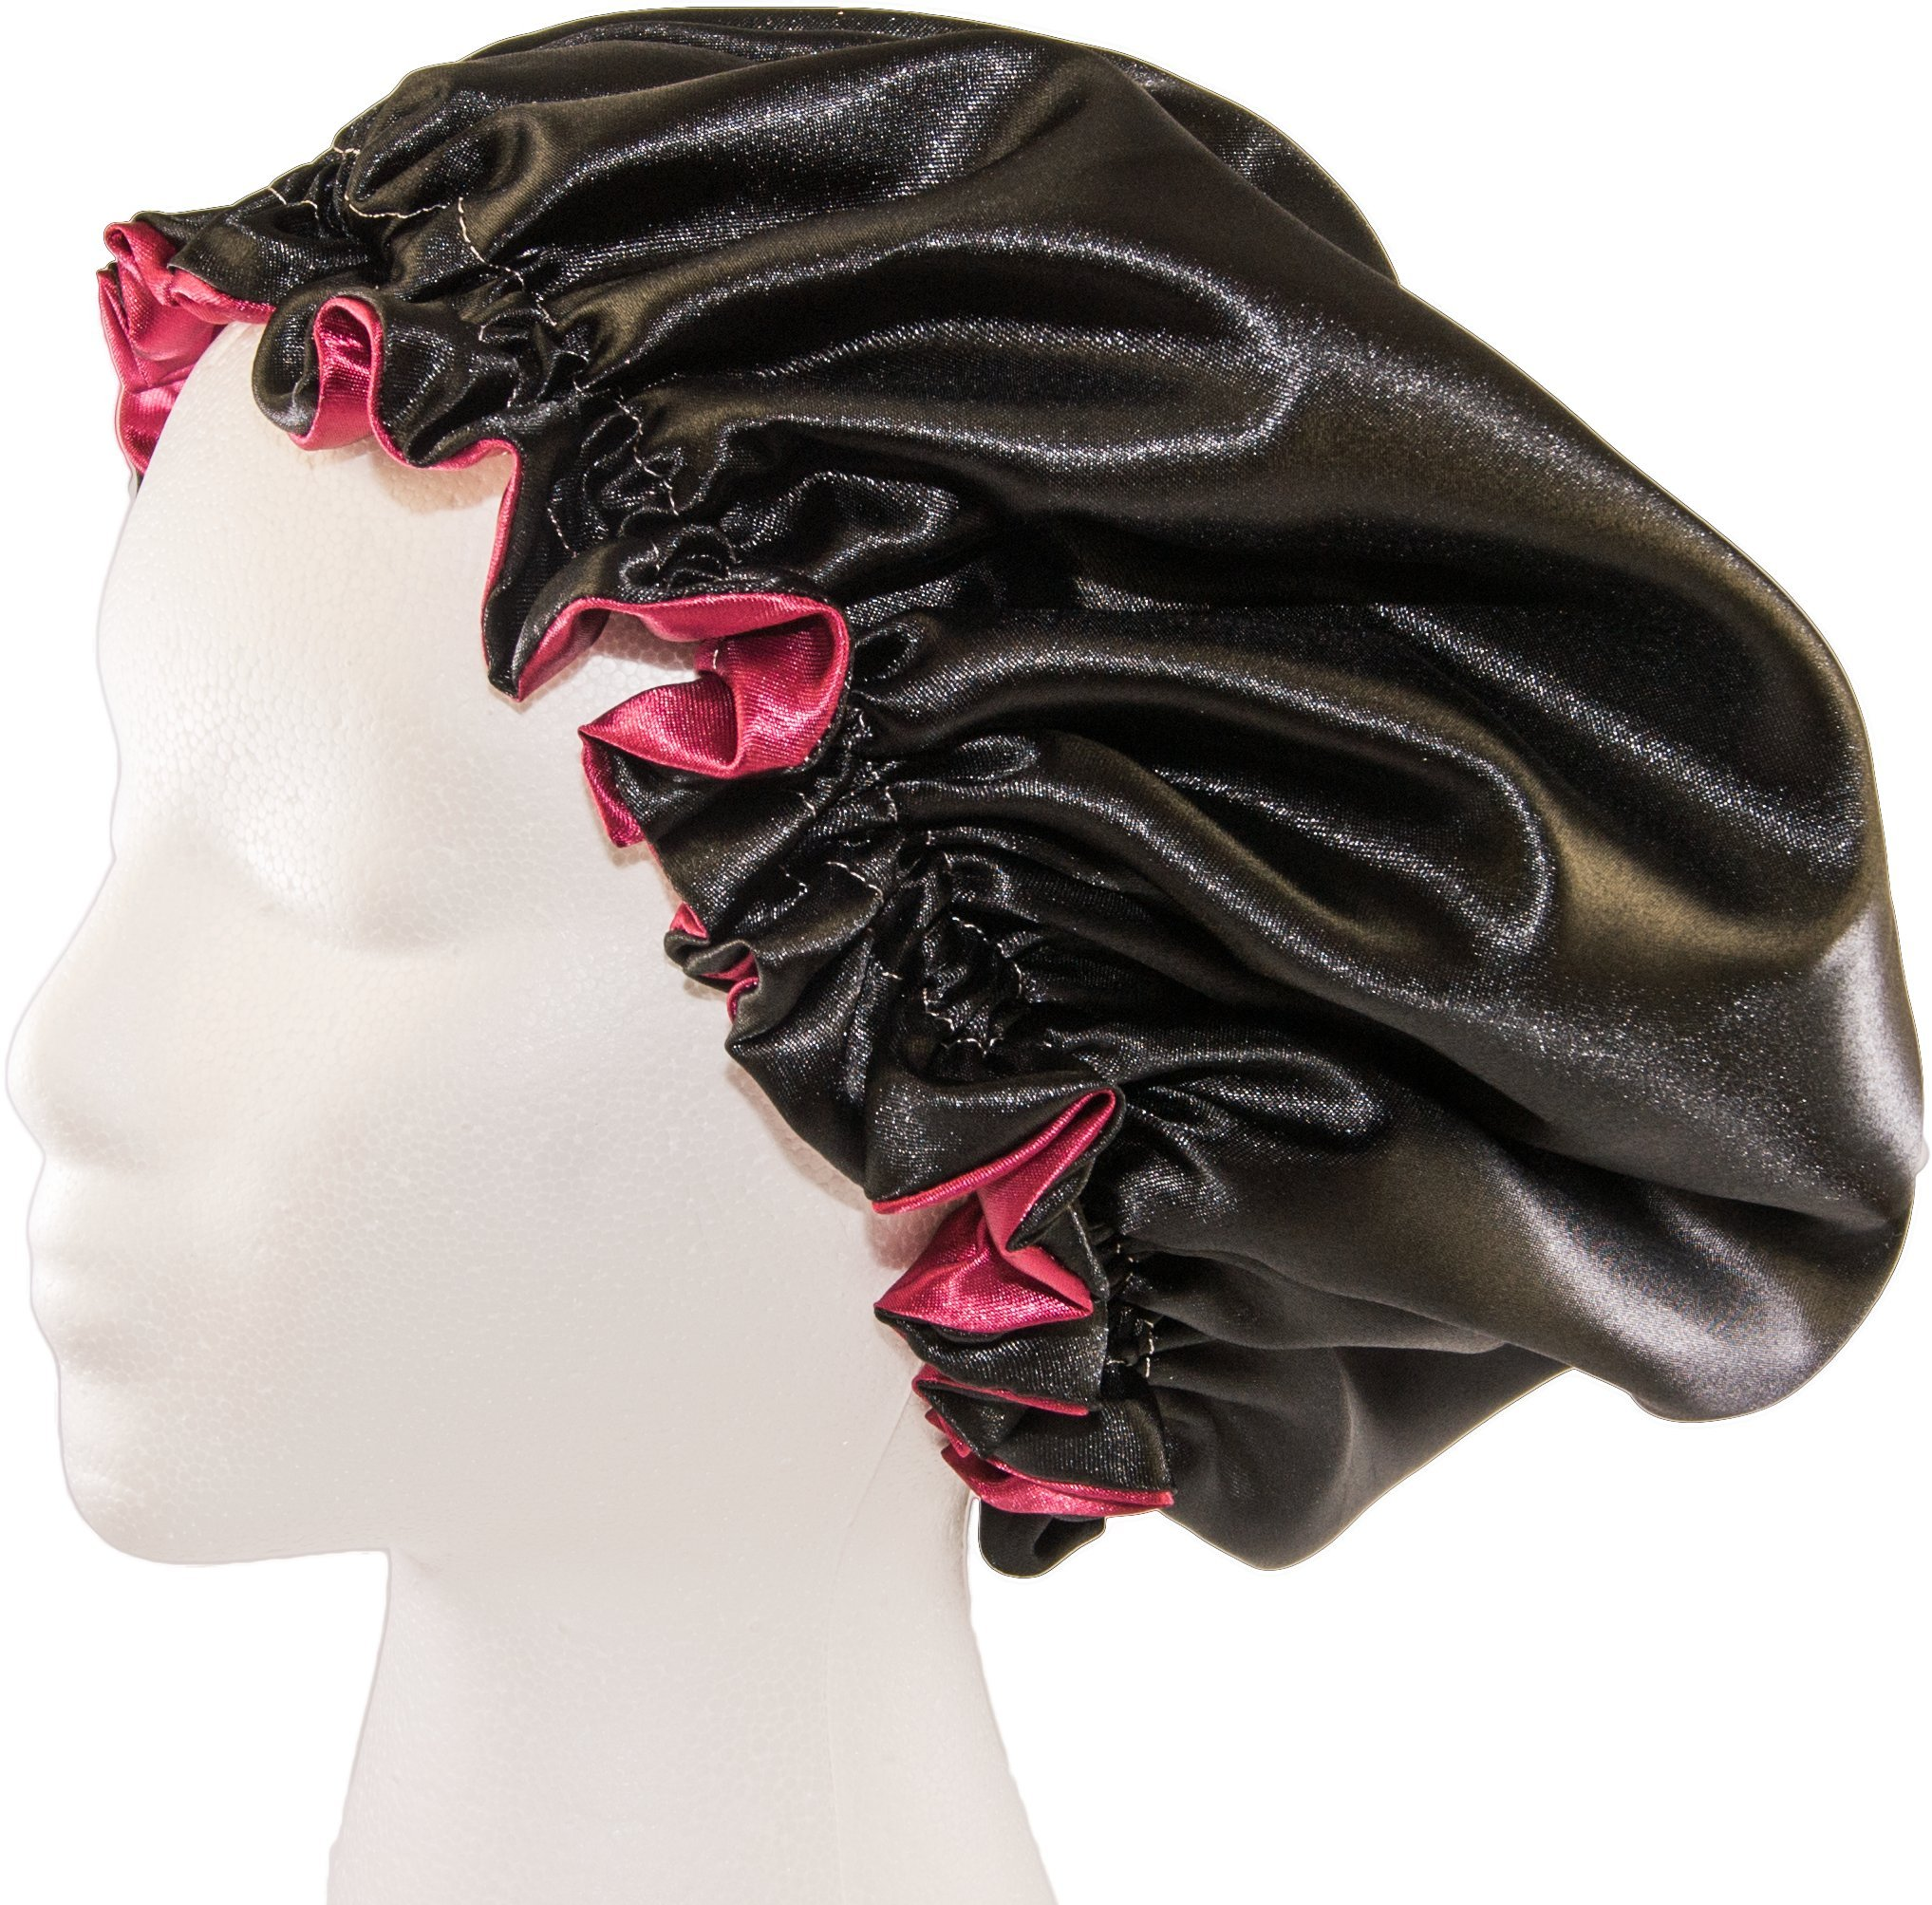 (X-Large, BURGUNDY) New 24'' Handmade Fully Reversible - High Quality Luxuries Pure Satin Hair Bonnet Safe For All Hair Types - Most Beneficial Hair care Product Available - Royal Bonnet by Royal Sensations Satin Bonnet